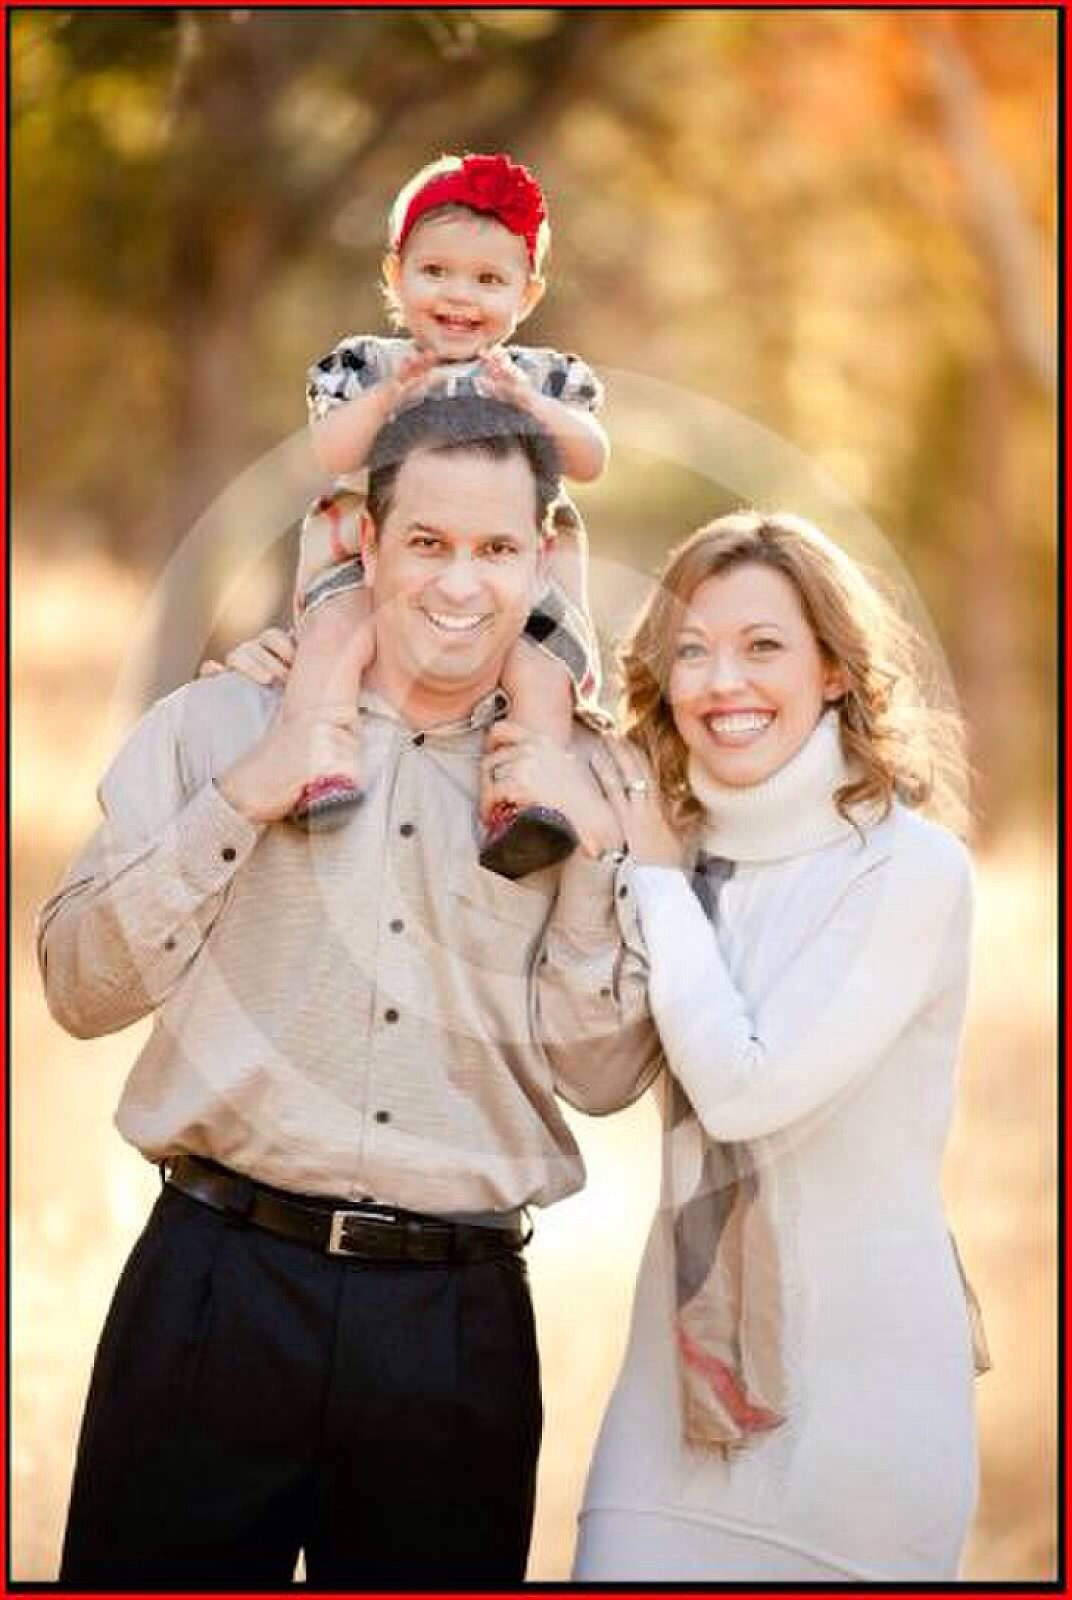 Family Burberry Christmas Photo | Babes | Pinterest | Picture ideas ...